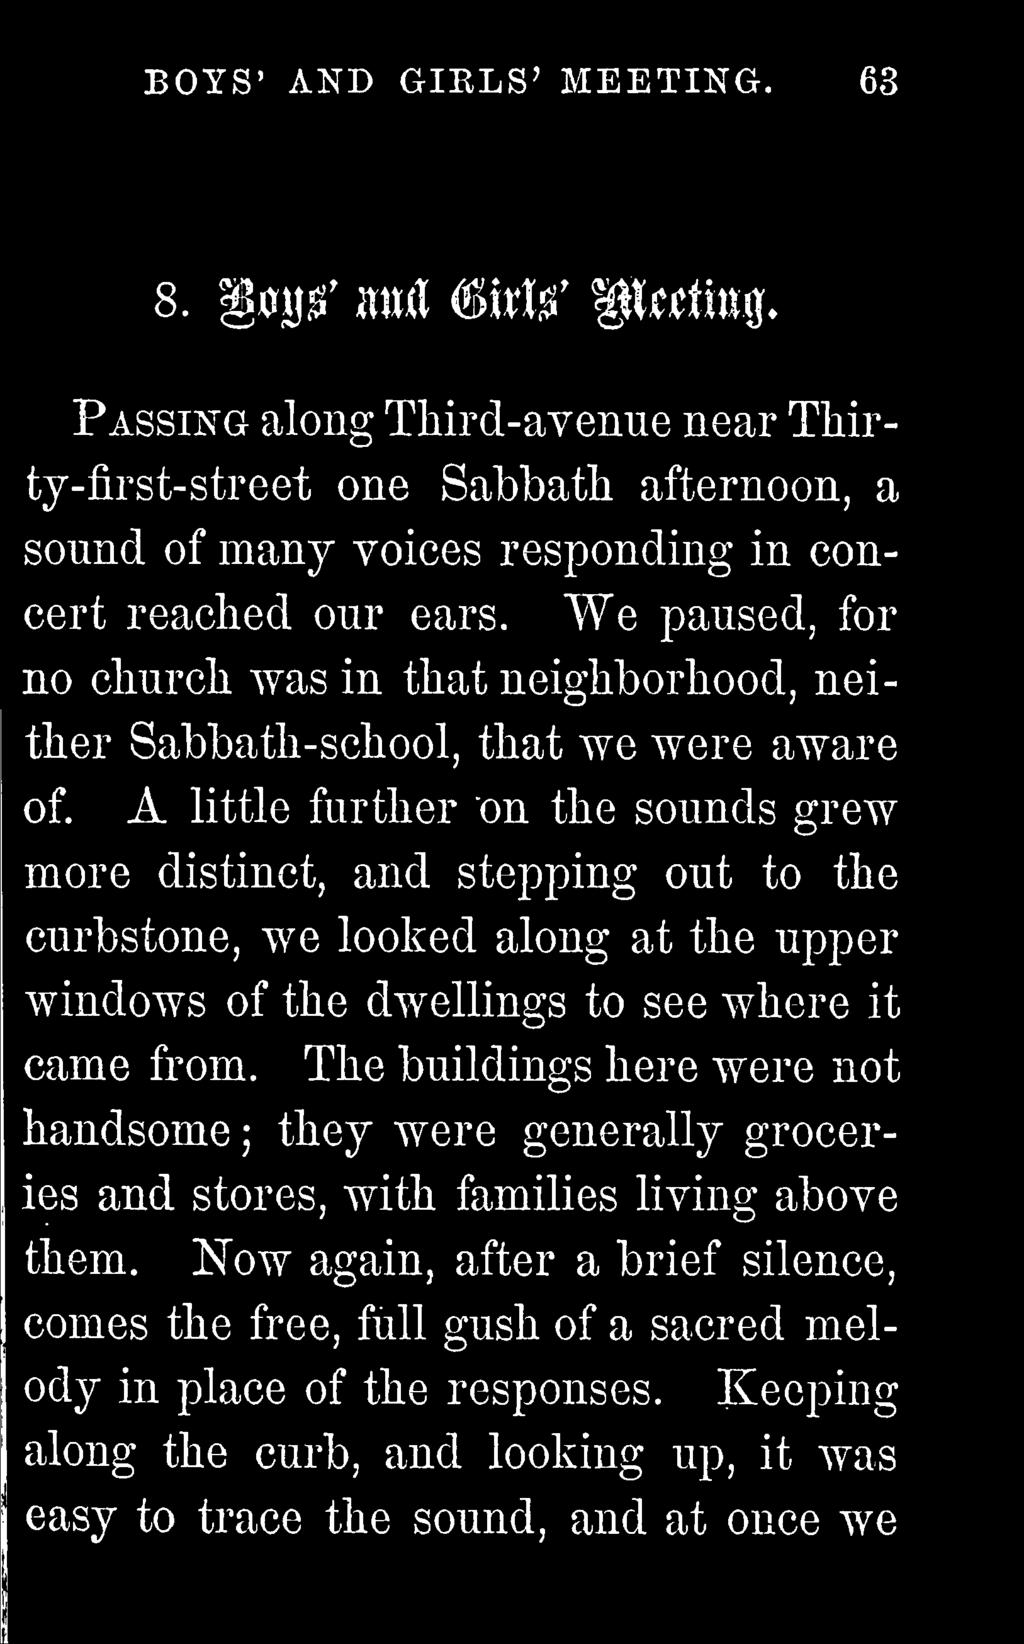 We paused, for no church was in that neighborhood, neither Sabbath-school, that we were aware of.